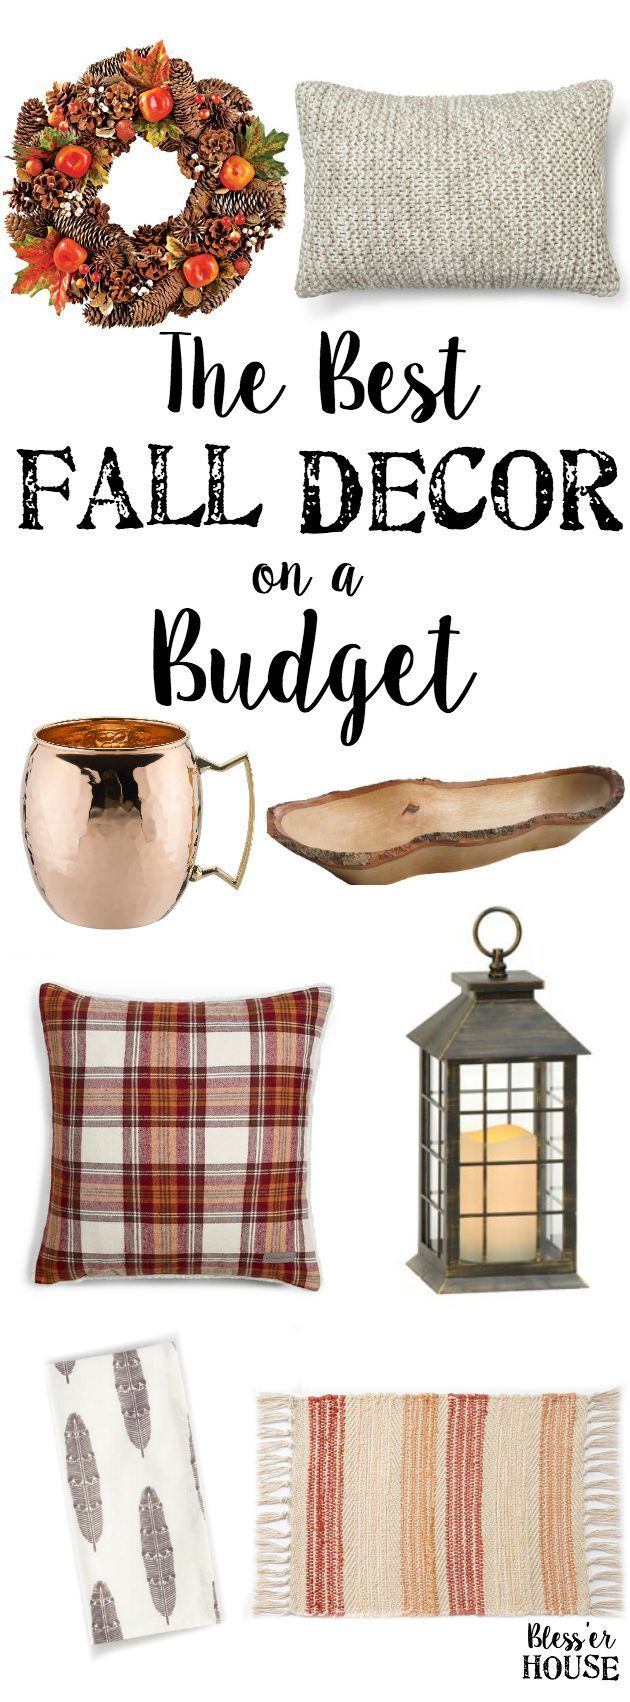 The Best Fall Decor on a Budget  - A shopping guide for all of the best deals on fall home decor in 2016 plus how to get cash back and resources to free/cheap fall decorating ideas.